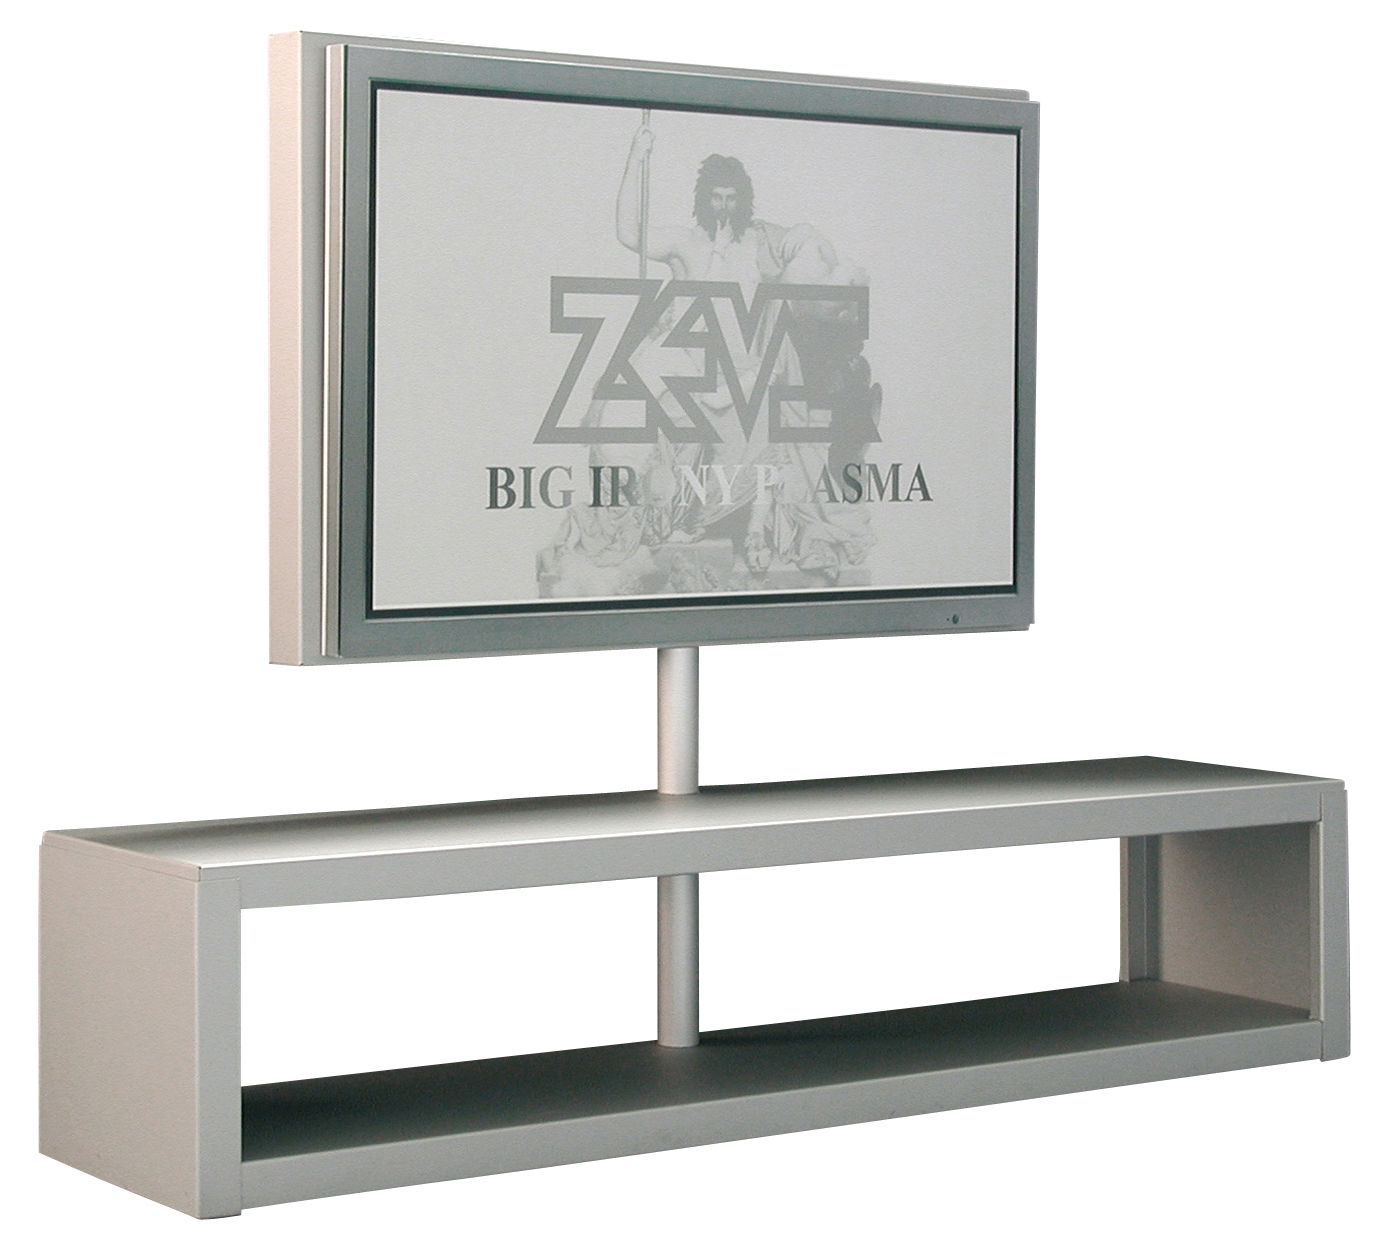 scopri mobile tv big al plasma console supporto per schermo piatto alluminio anodizzato di. Black Bedroom Furniture Sets. Home Design Ideas